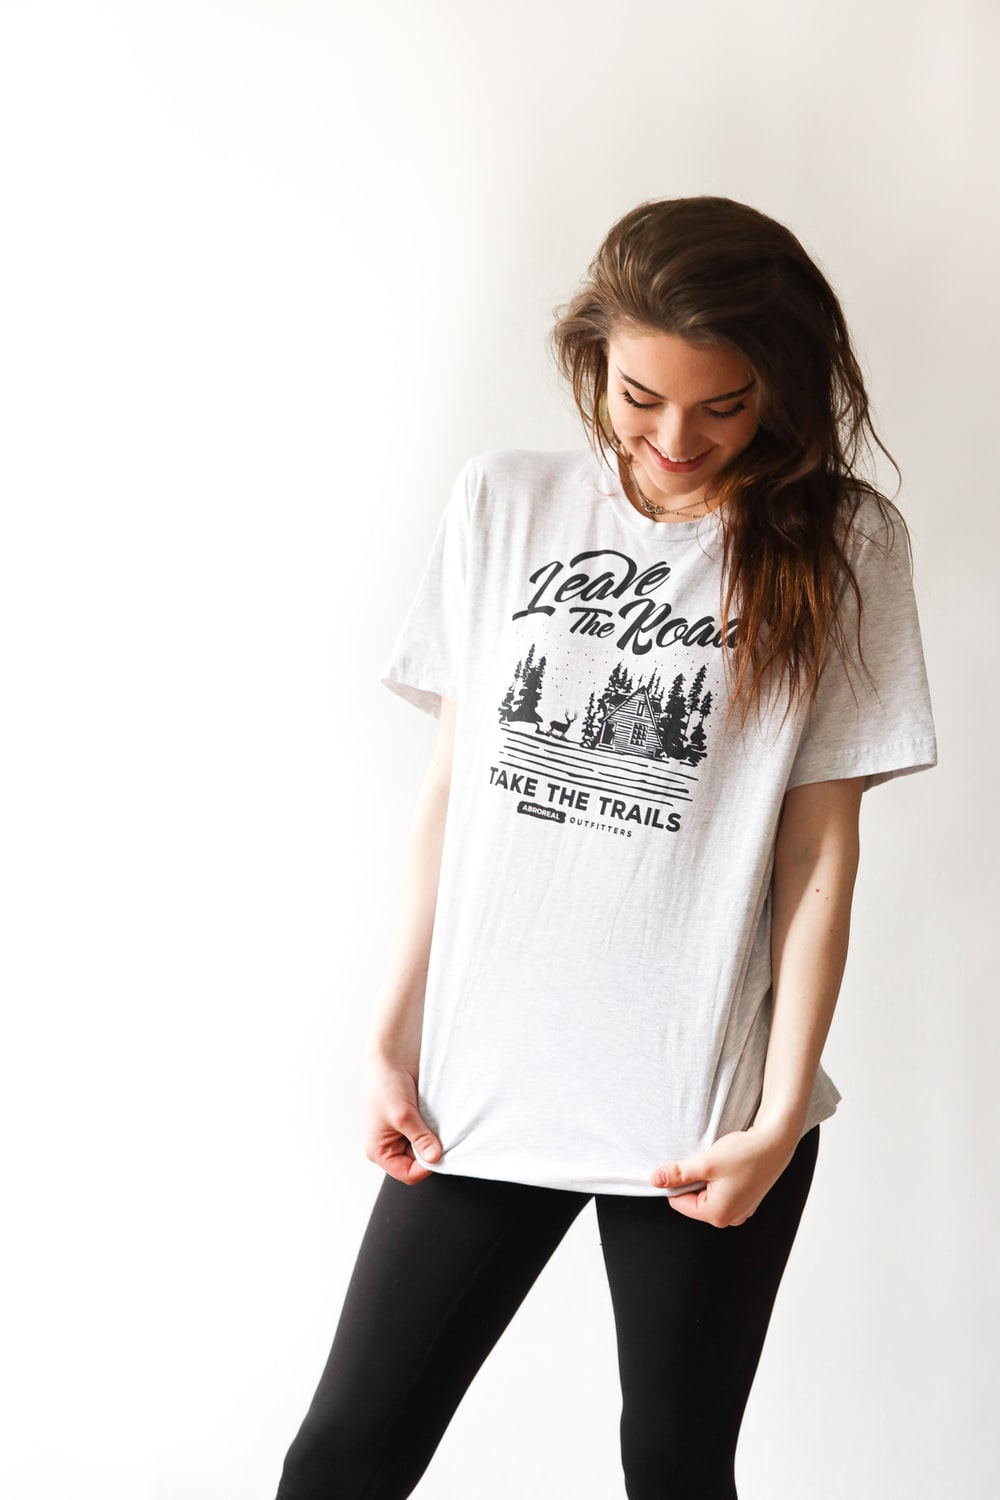 smiling woman in black and white print t-shirt